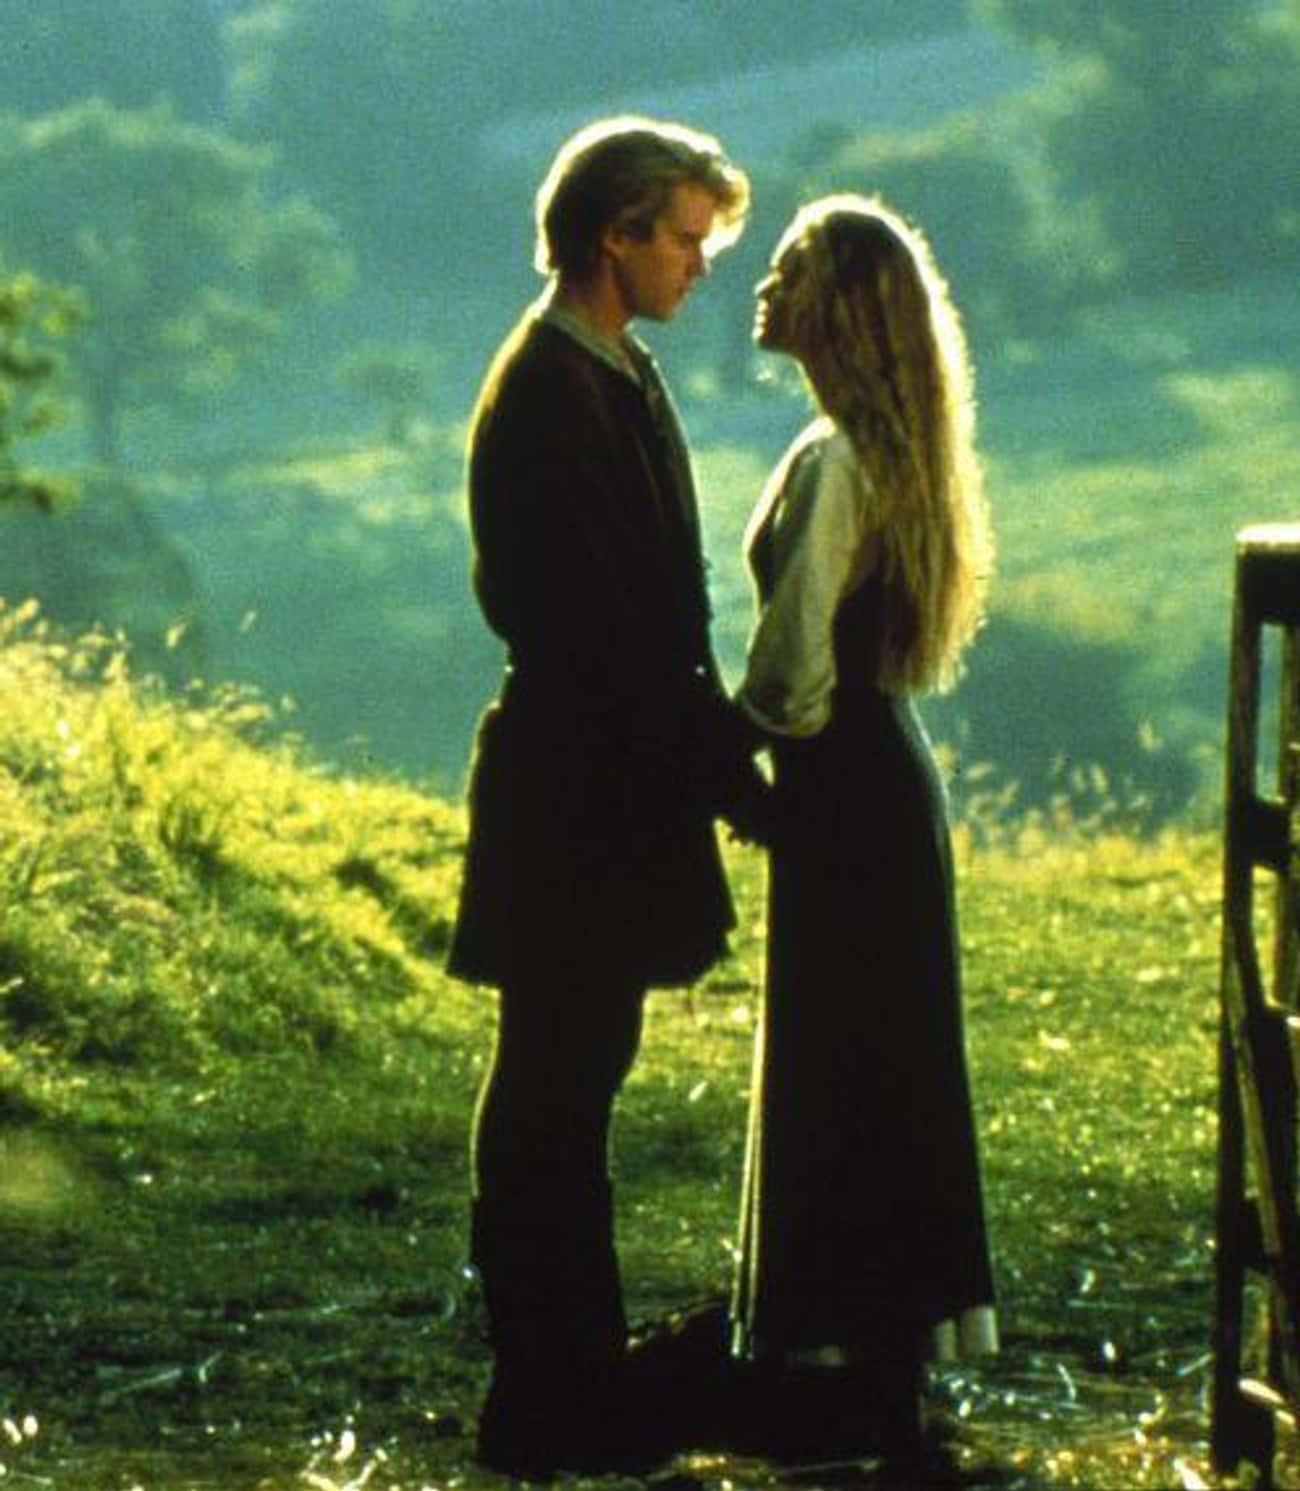 The Princess Bride is listed (or ranked) 1 on the list The Most Memorable Romantic Comedy Movie Quotes